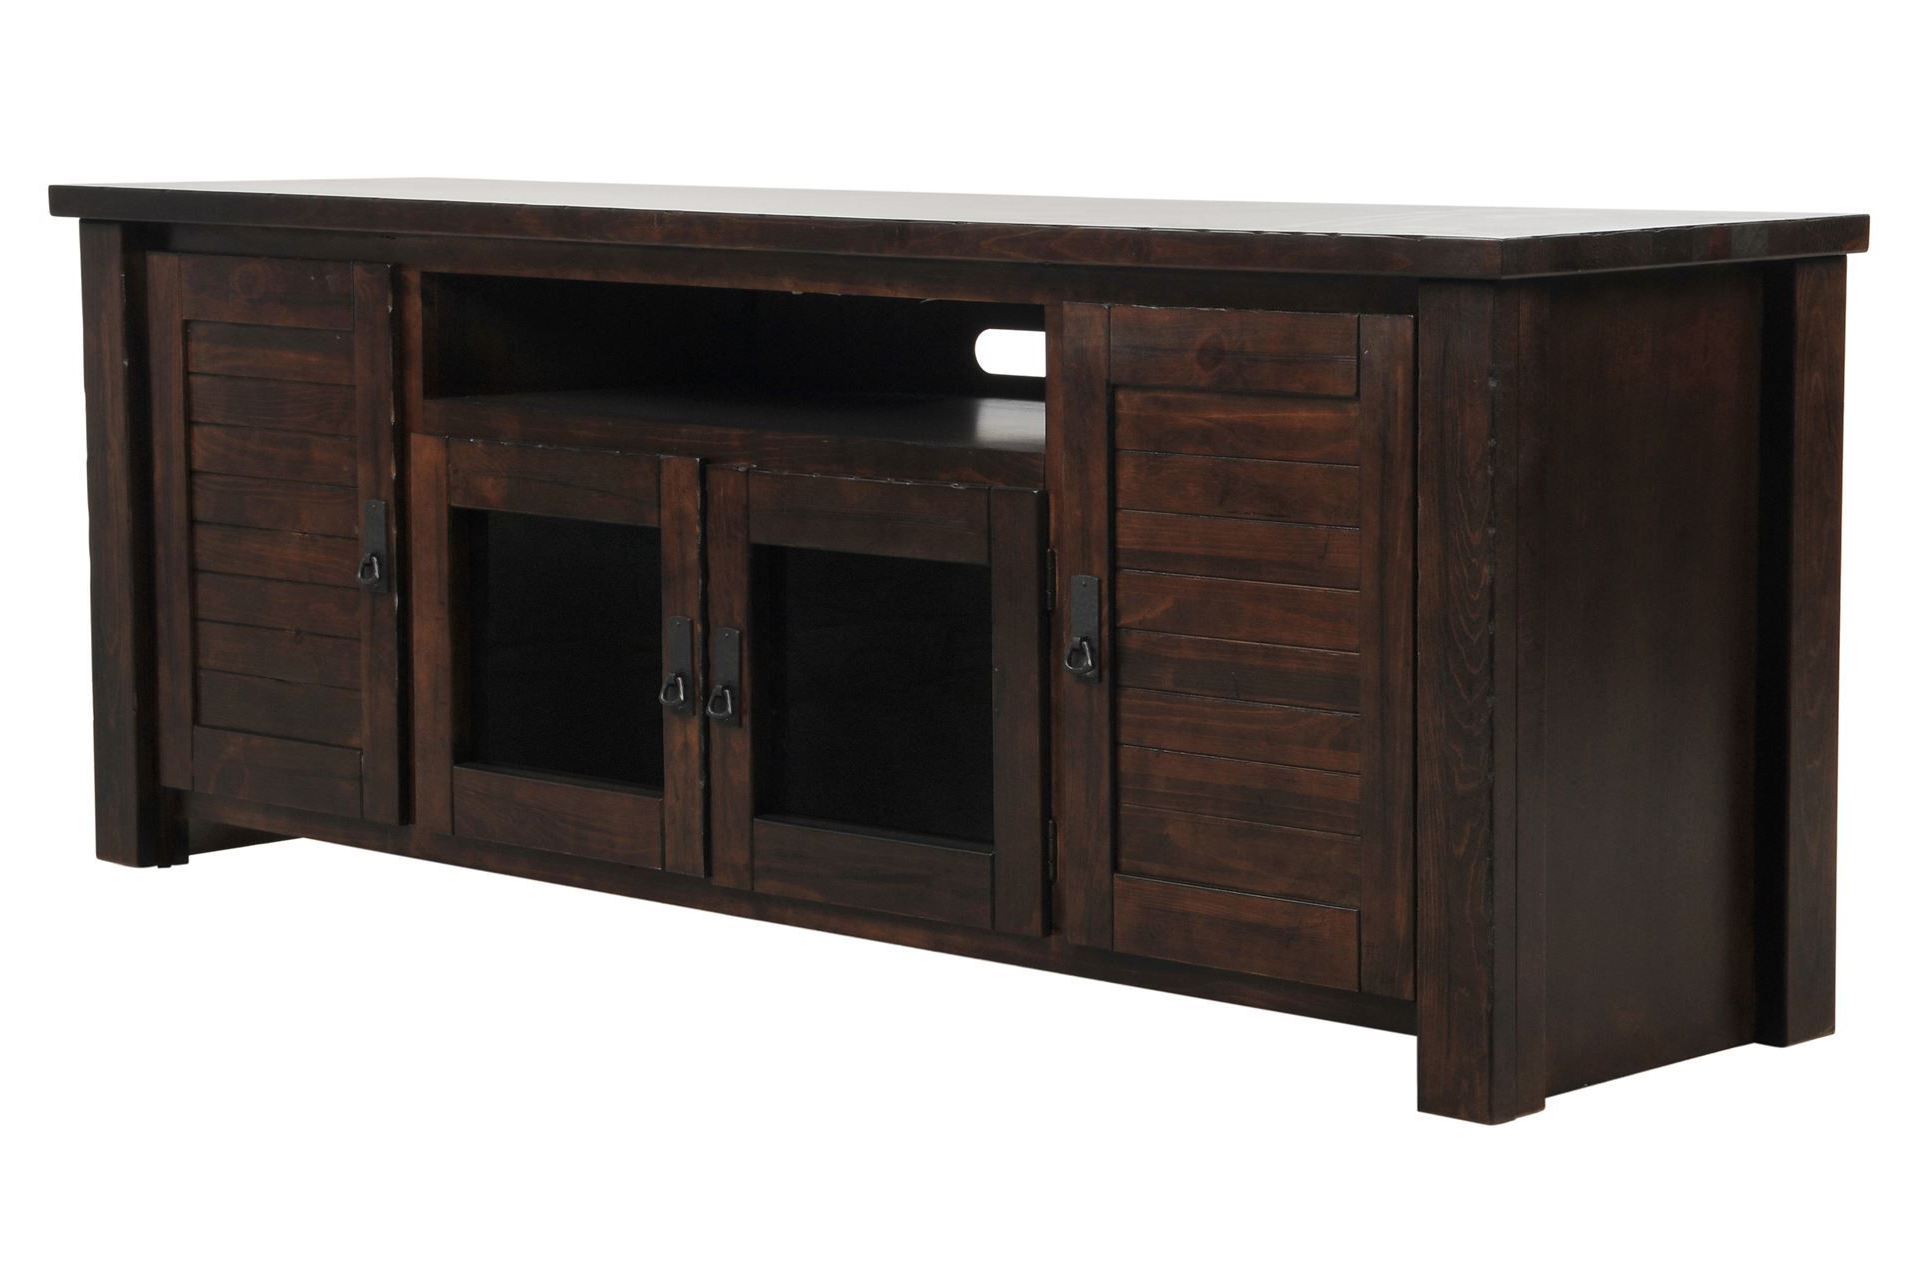 74 Inch Tv Stand, Canyon, Brown | Consoles, Living Rooms And Men Cave For Sinclair White 54 Inch Tv Stands (View 7 of 20)